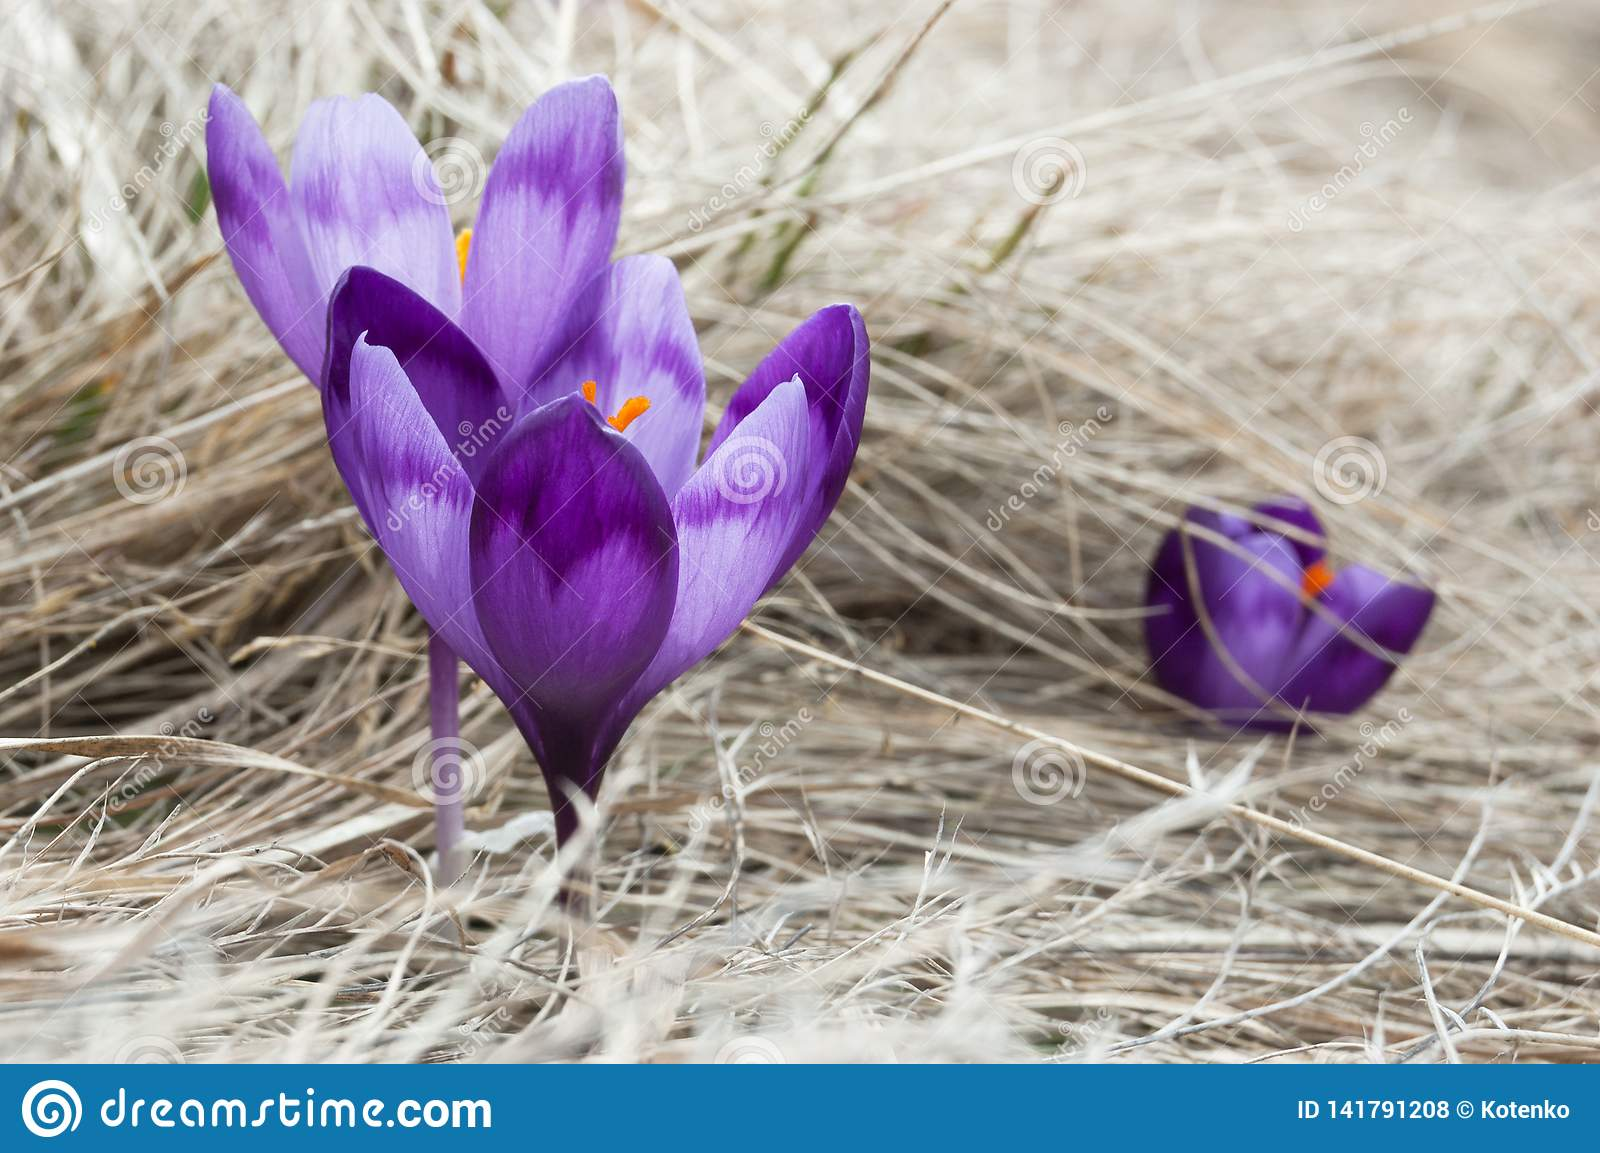 Purple Crocuses - Spring Flowers